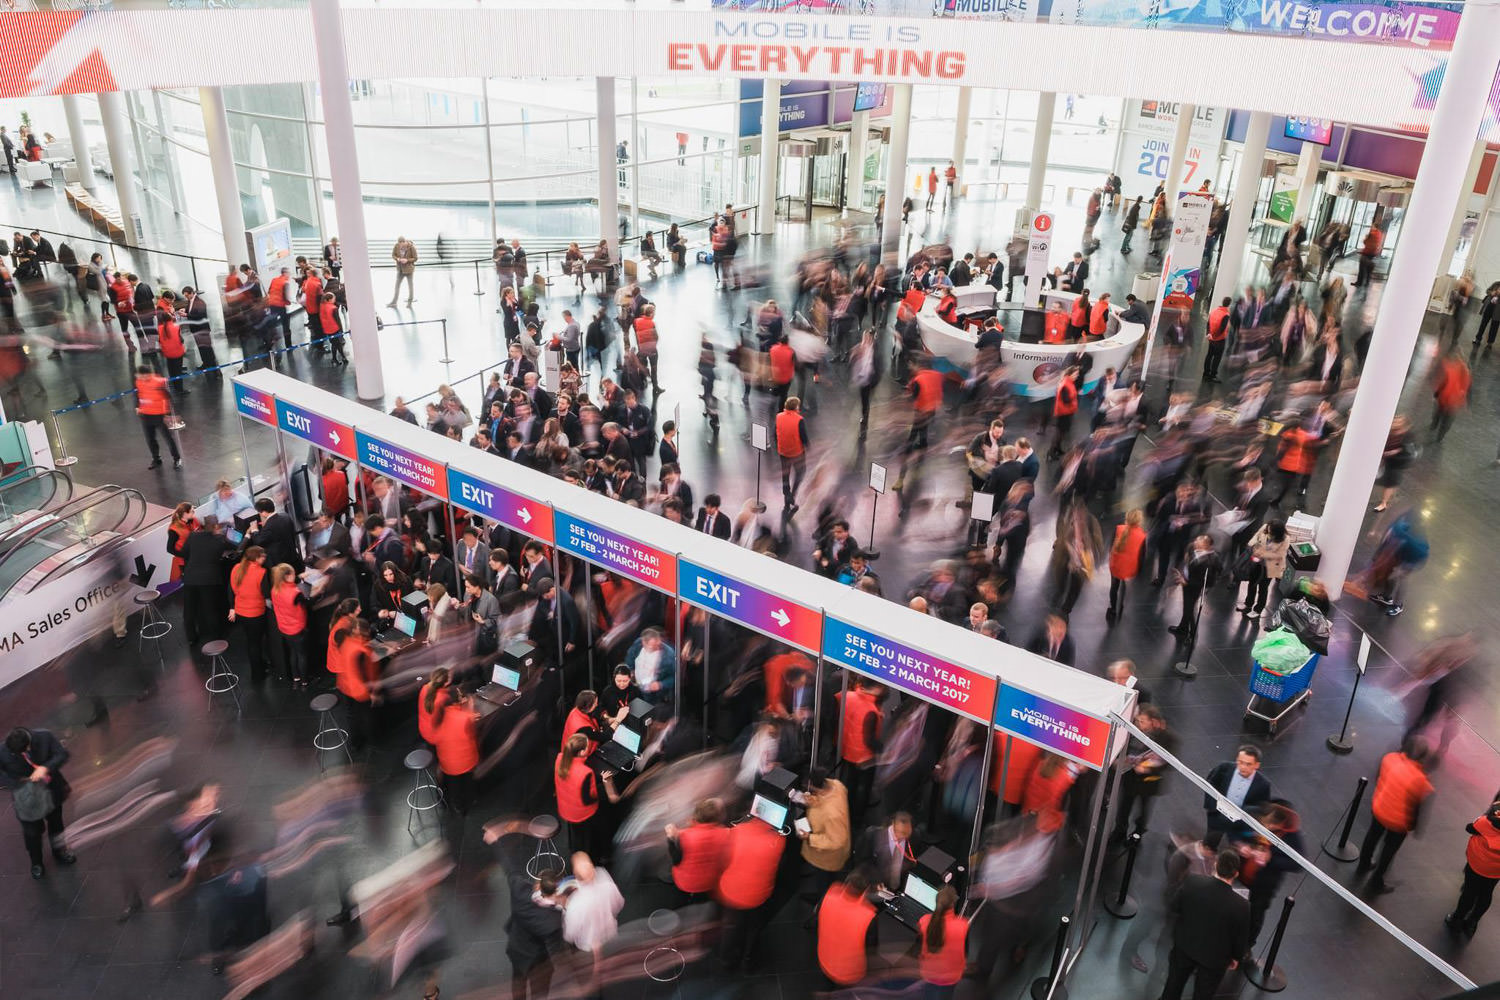 A long exposure photograph of people entering the Mobile World Conference event in Fira Barcelona, Spain.